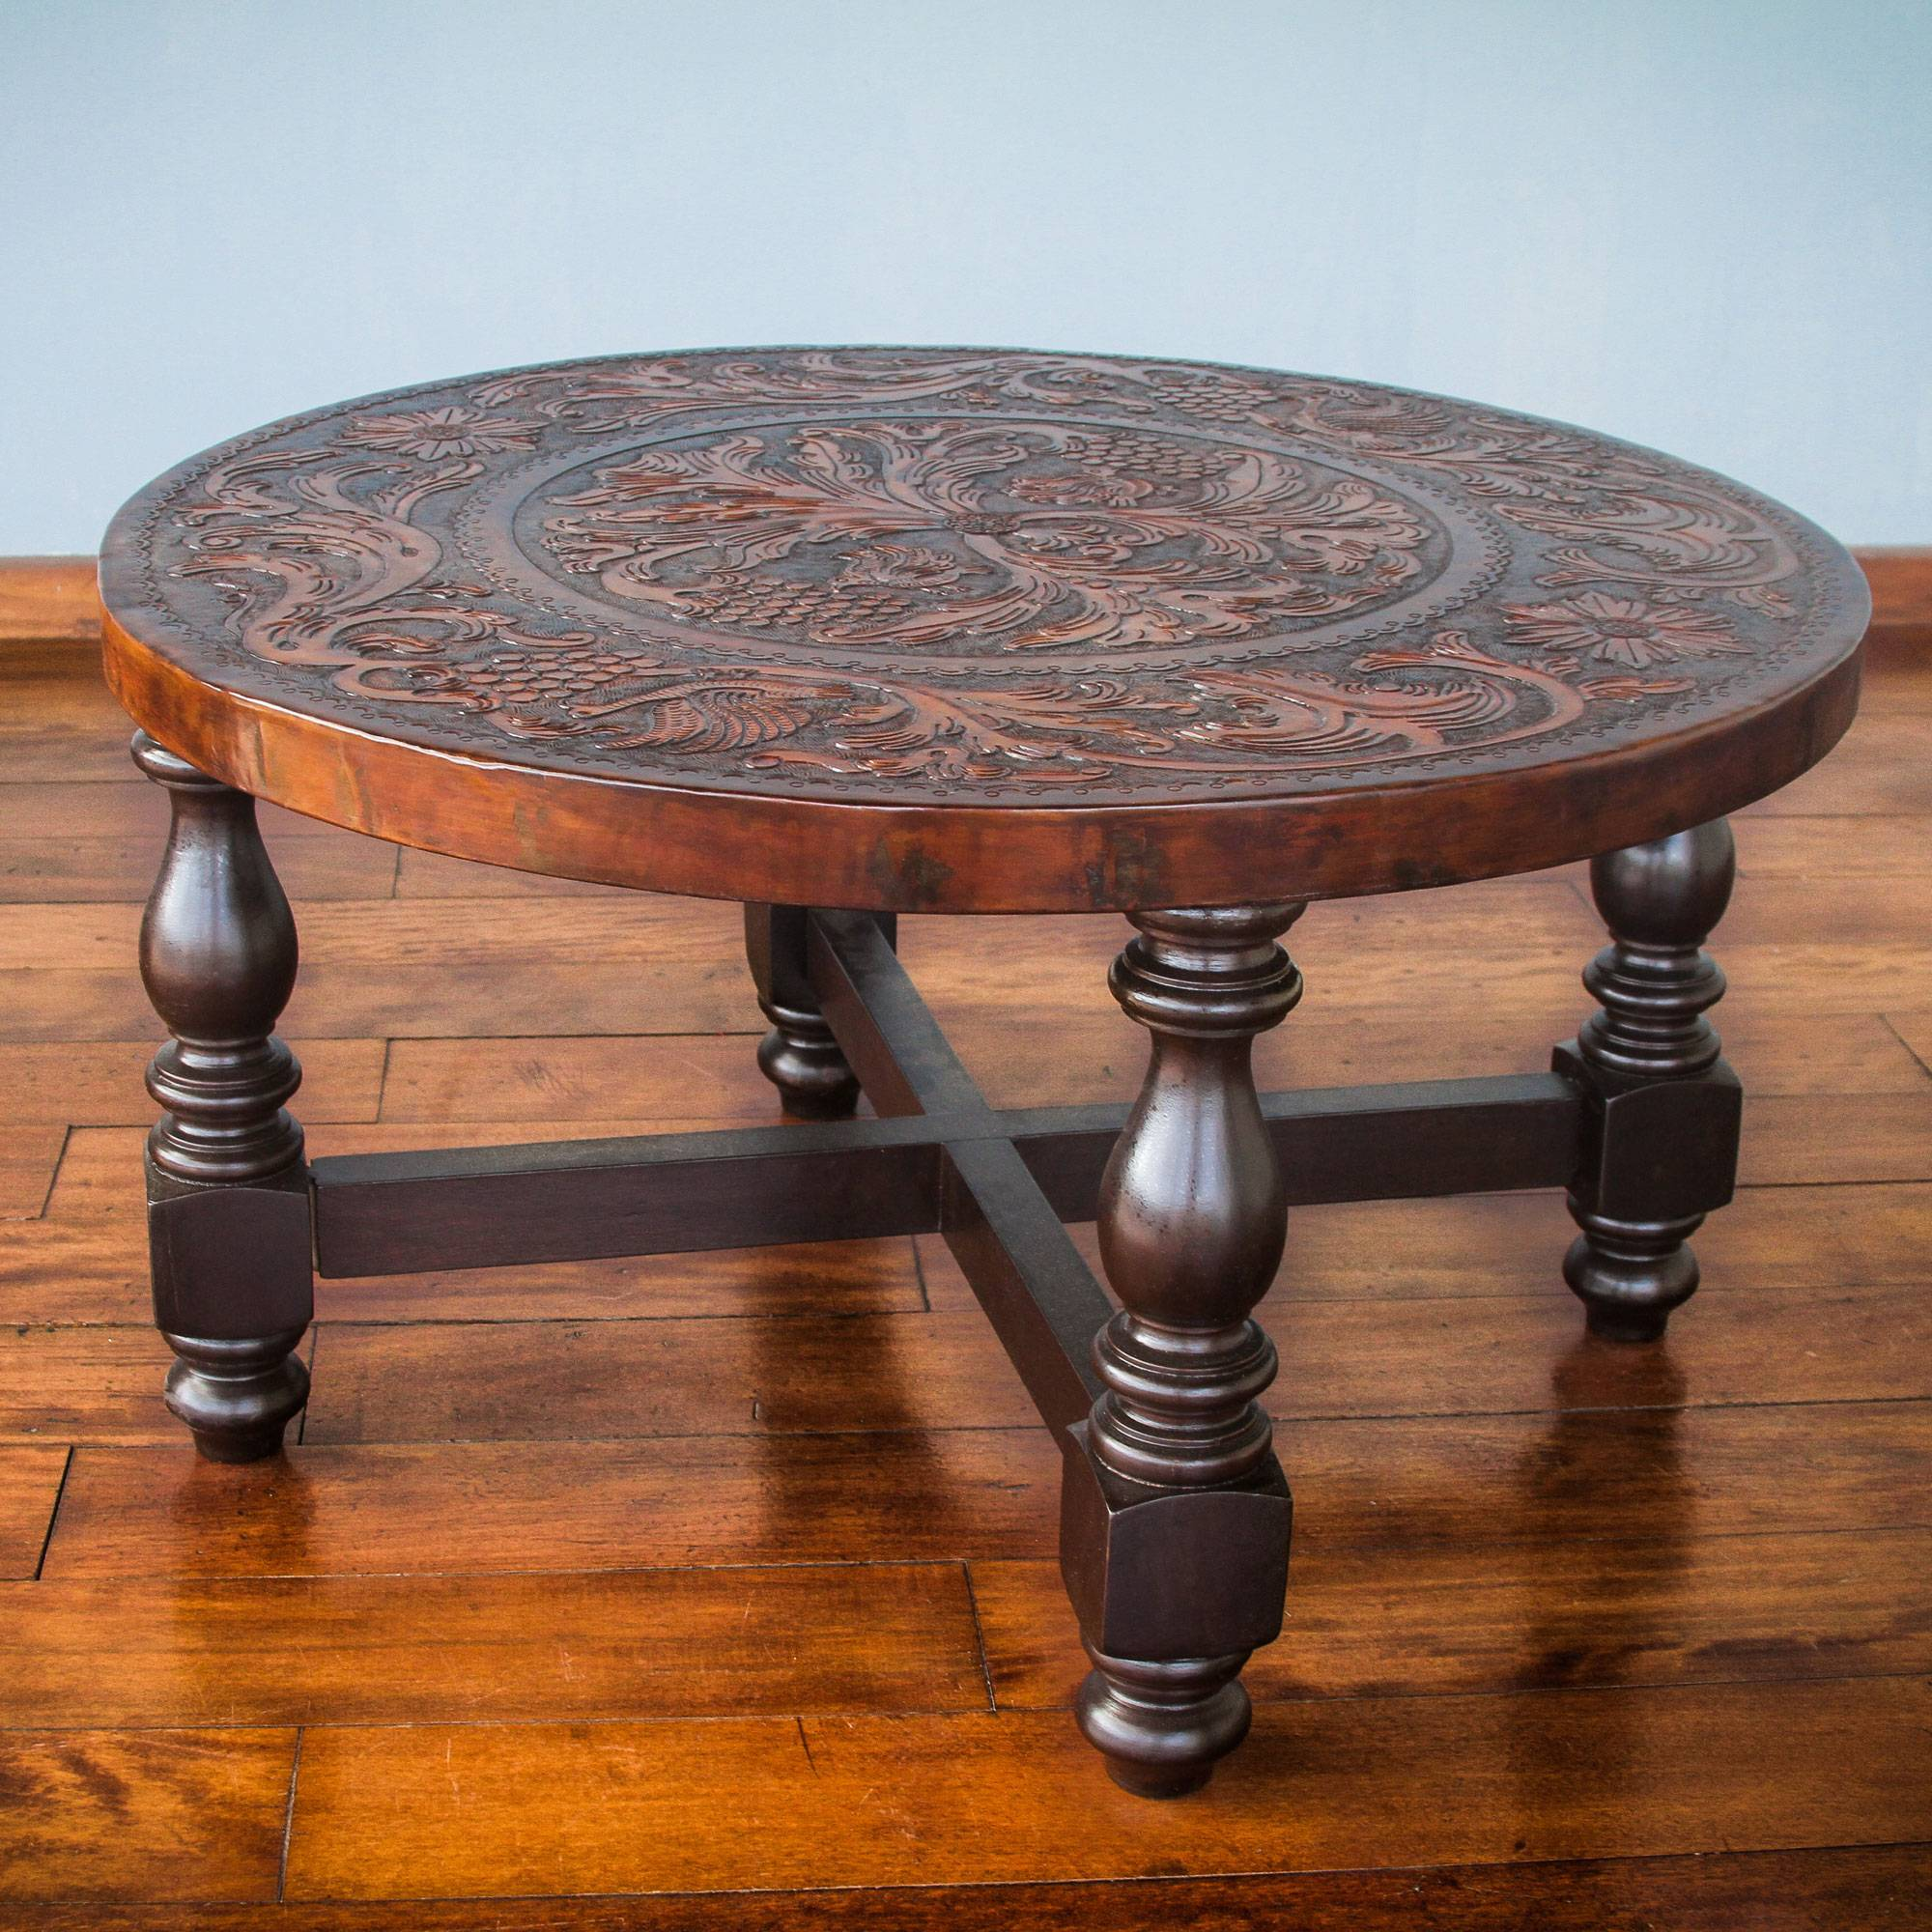 Round Wood Coffee Table.Tooled Leather Round Wood Coffee Table 31 Inch Diameter Vineyard Birds